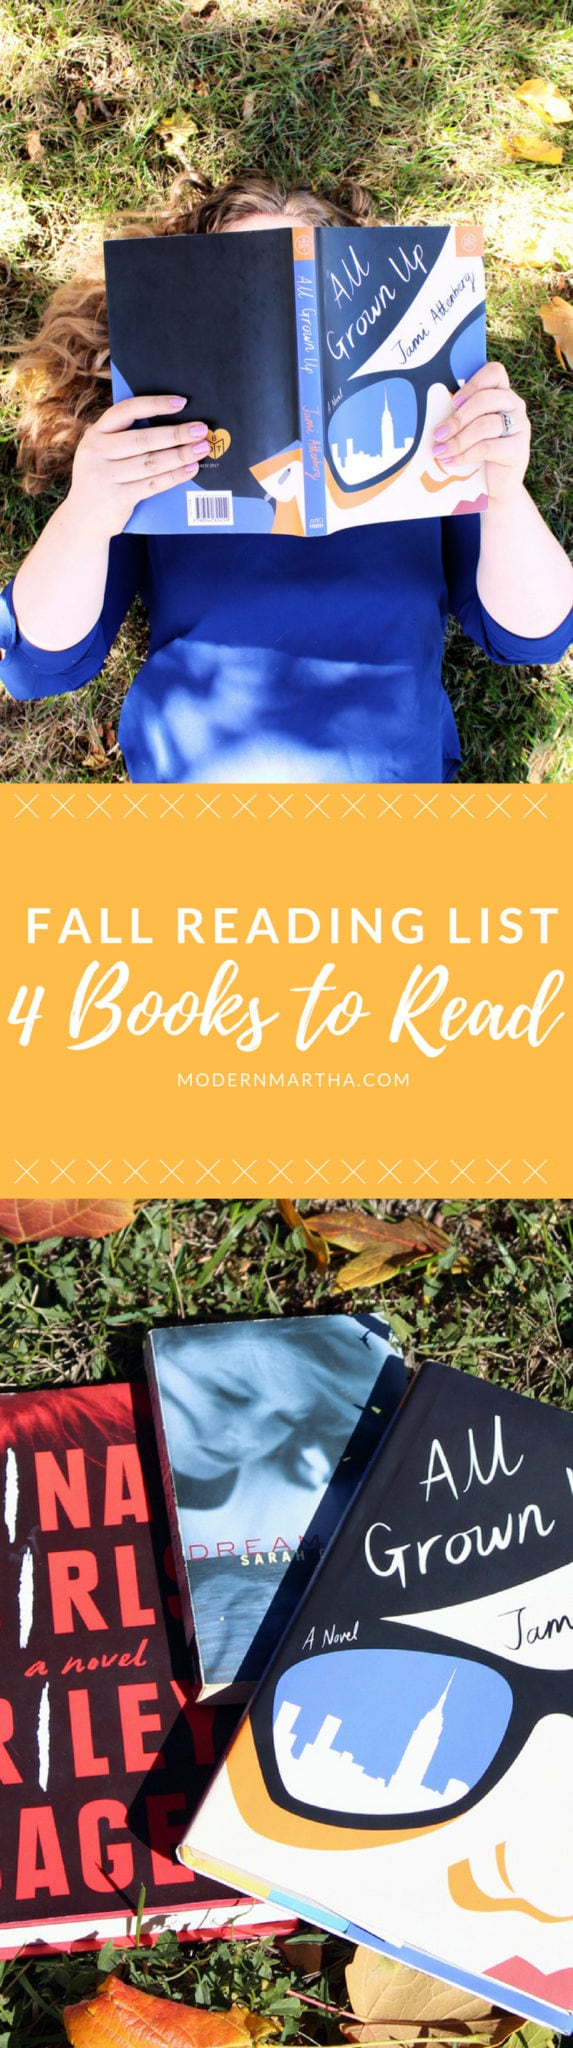 4 Books to Read This Fall